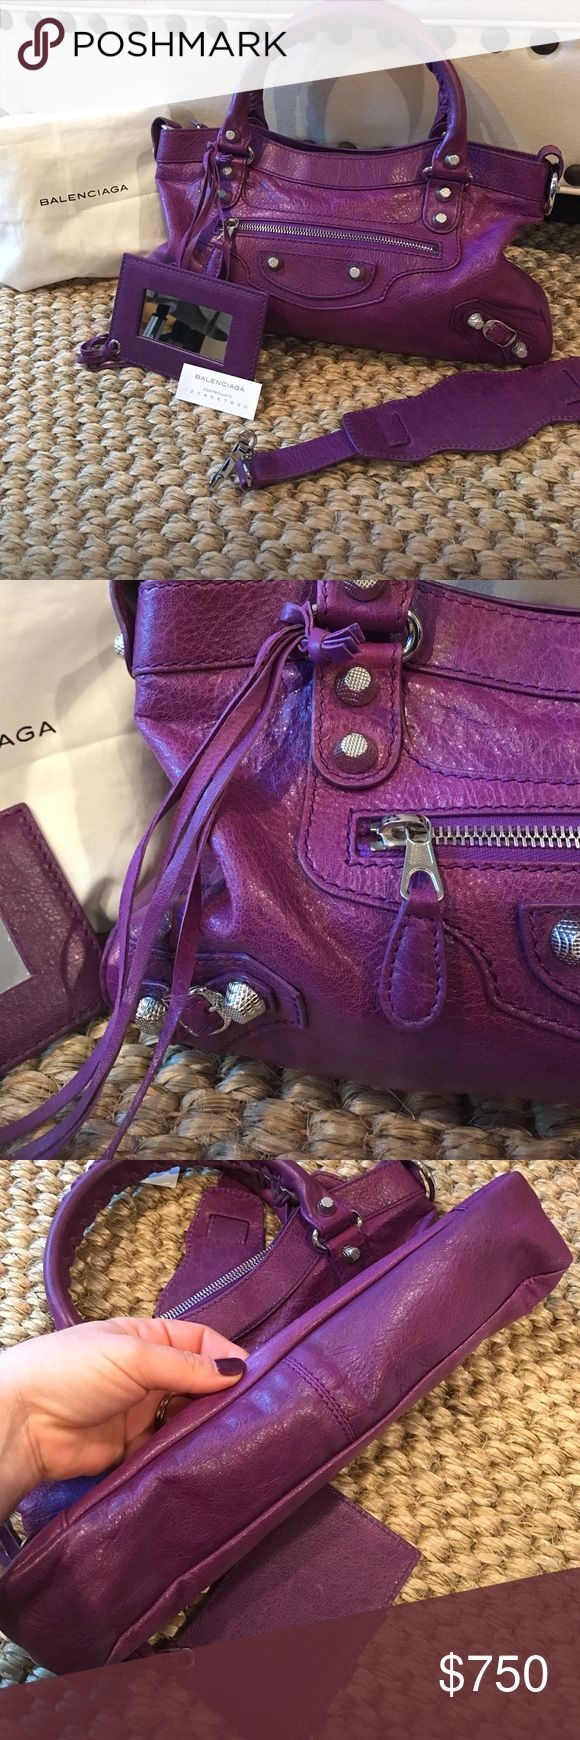 Balenciaga First Arena Giant 12 Perfect condition, beautiful color, comes with dust bag. I am re-poshing. Very similar to a bag I already own. 100% authentic and has already had Poshmark stamp of approval. Bags